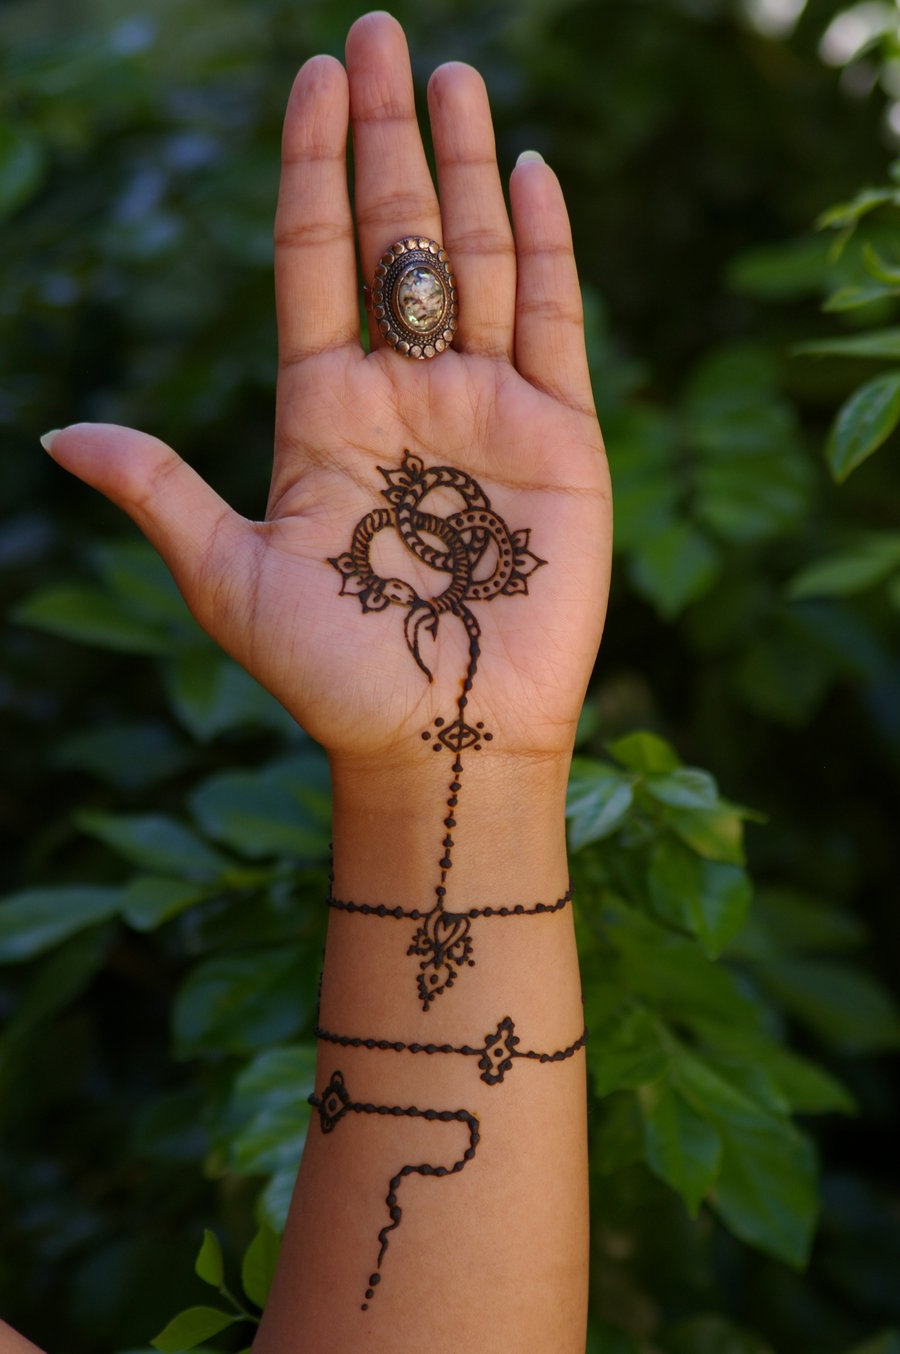 Antique Jewelry Inspired Henna Tattoo